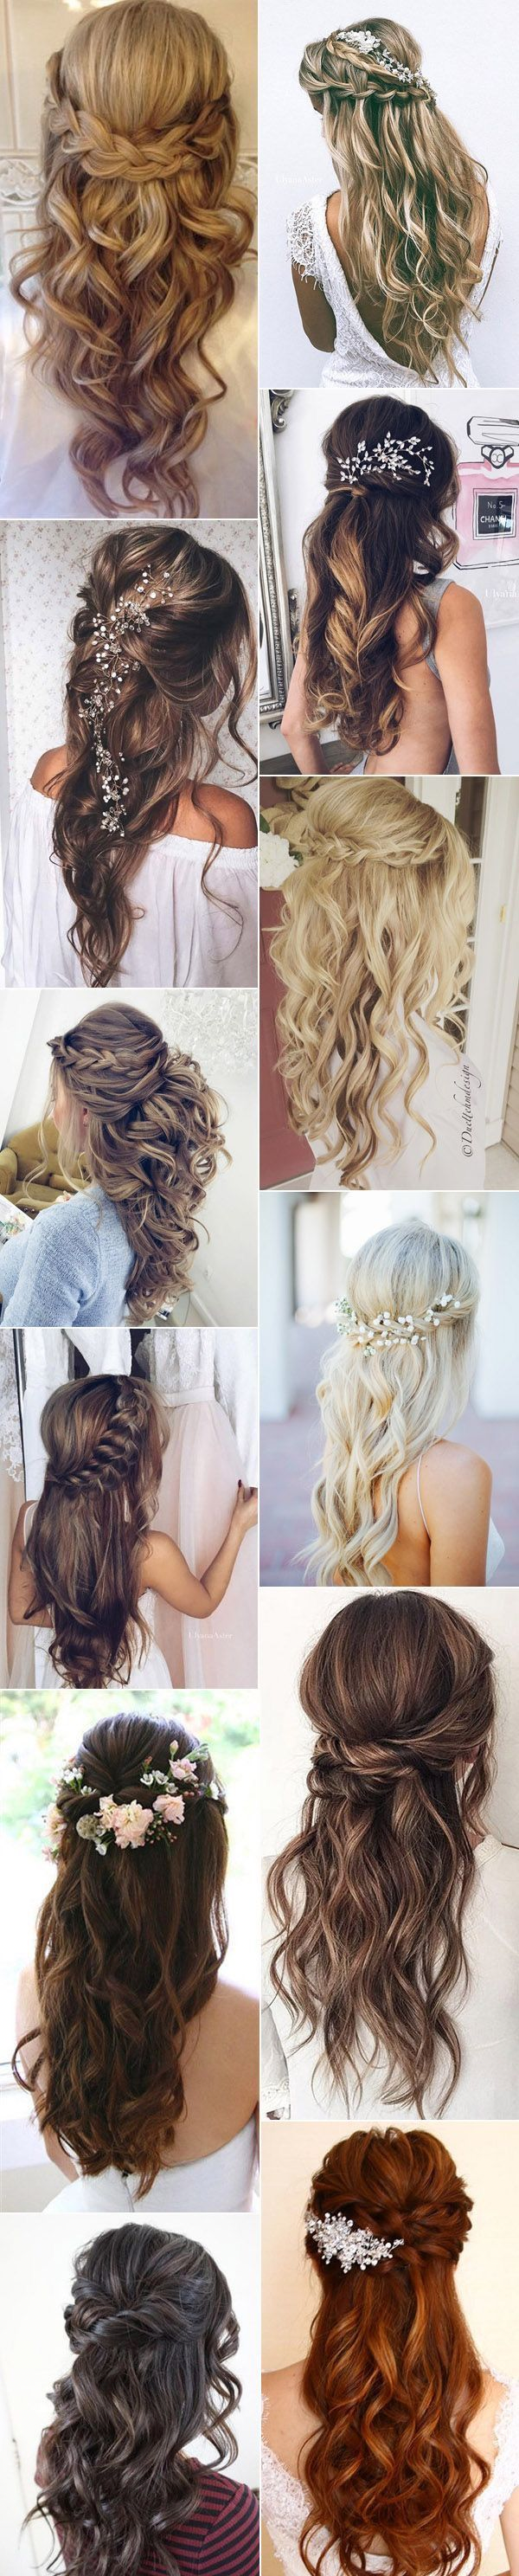 Pin by christina on hair ideas pinterest